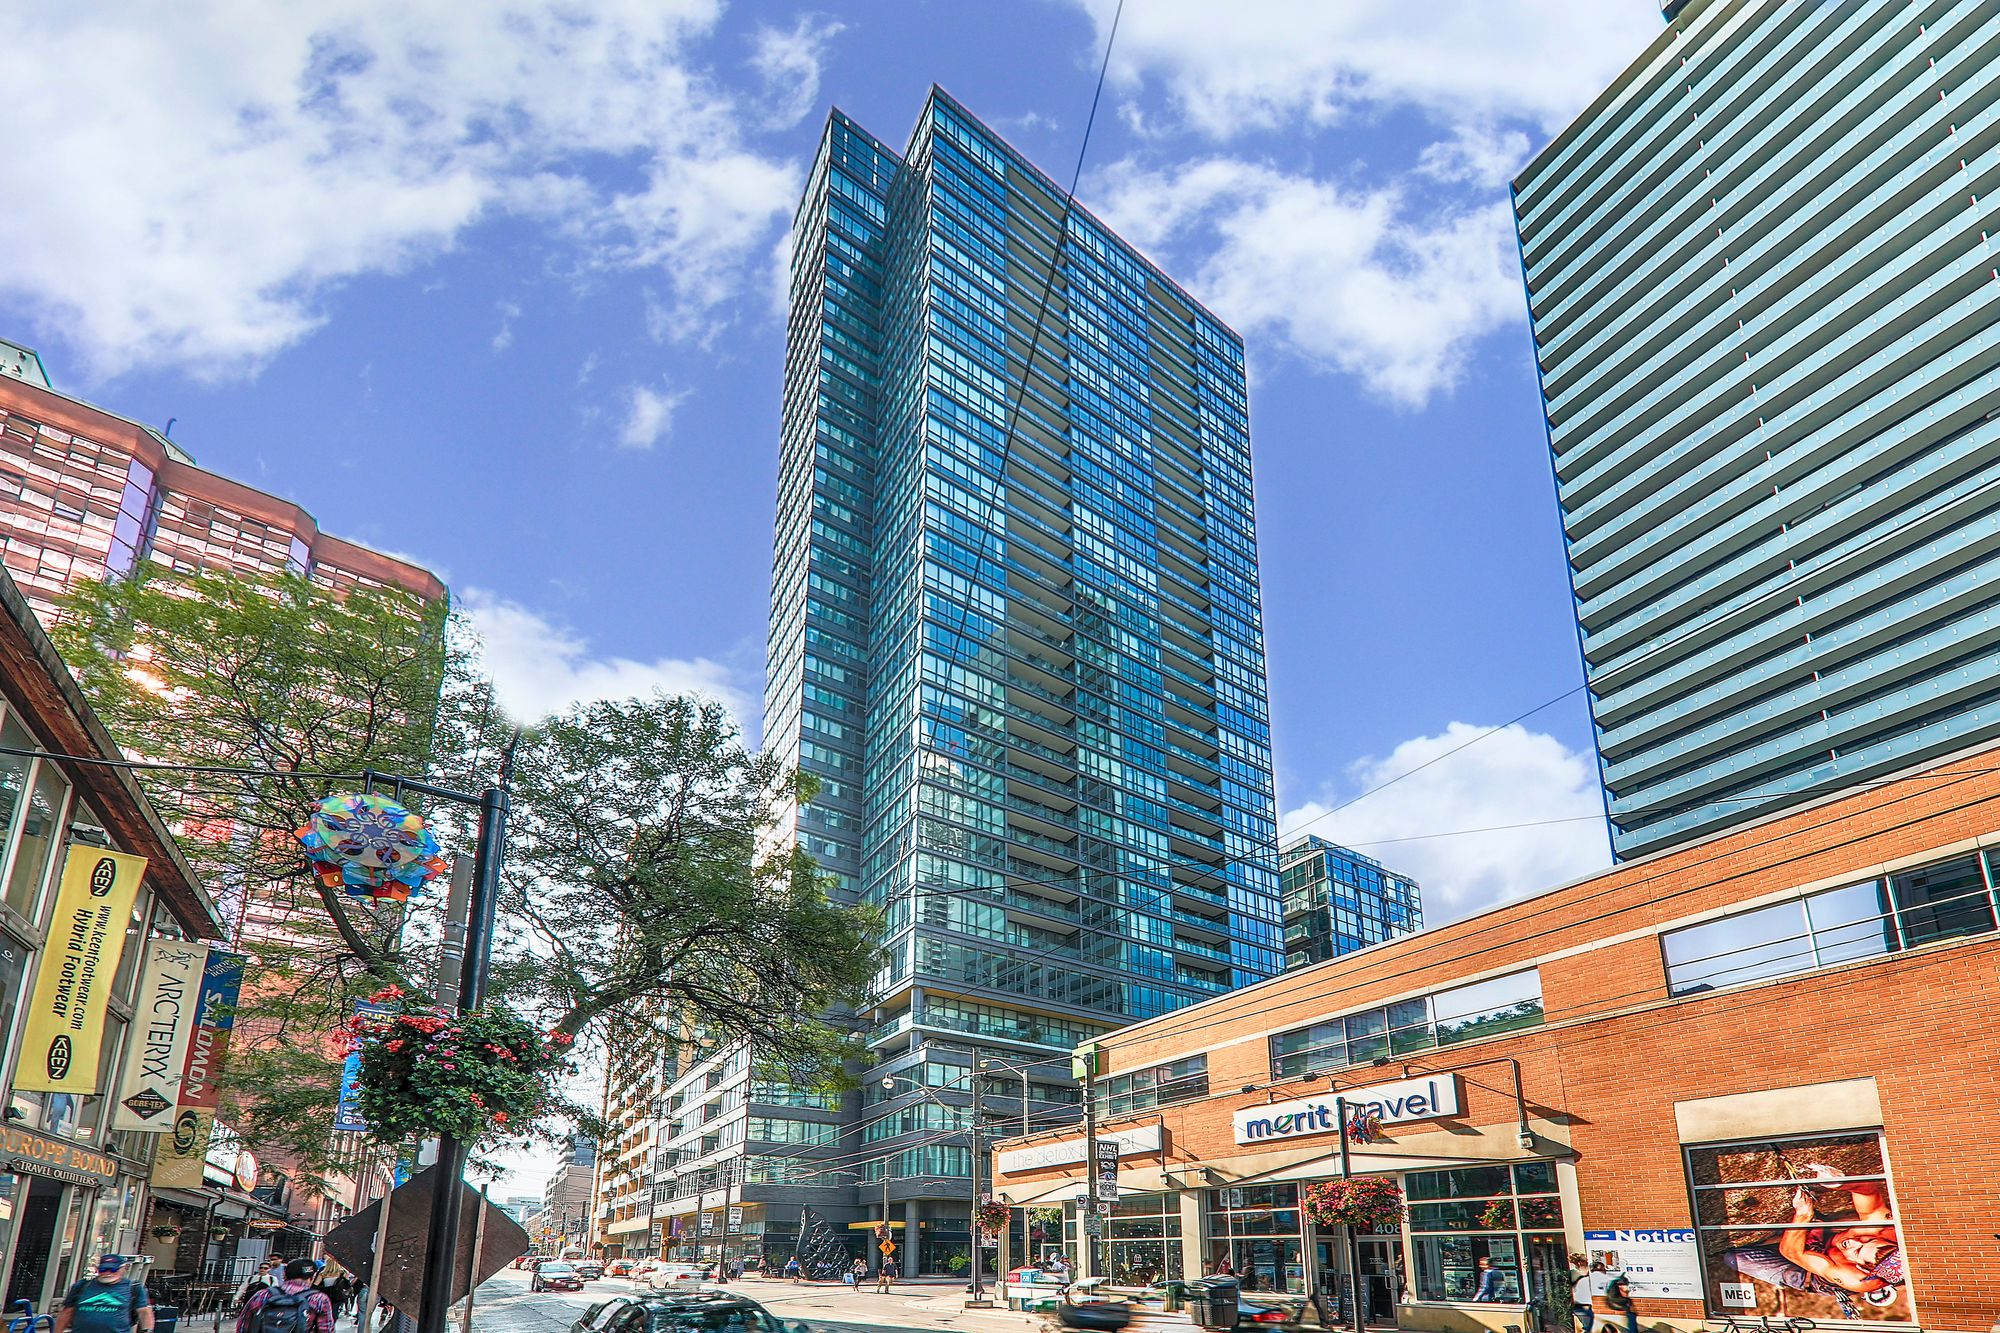 Charlie At 8 Charlotte St 2 Condos For Sale 4 Units For Rent Strata Ca